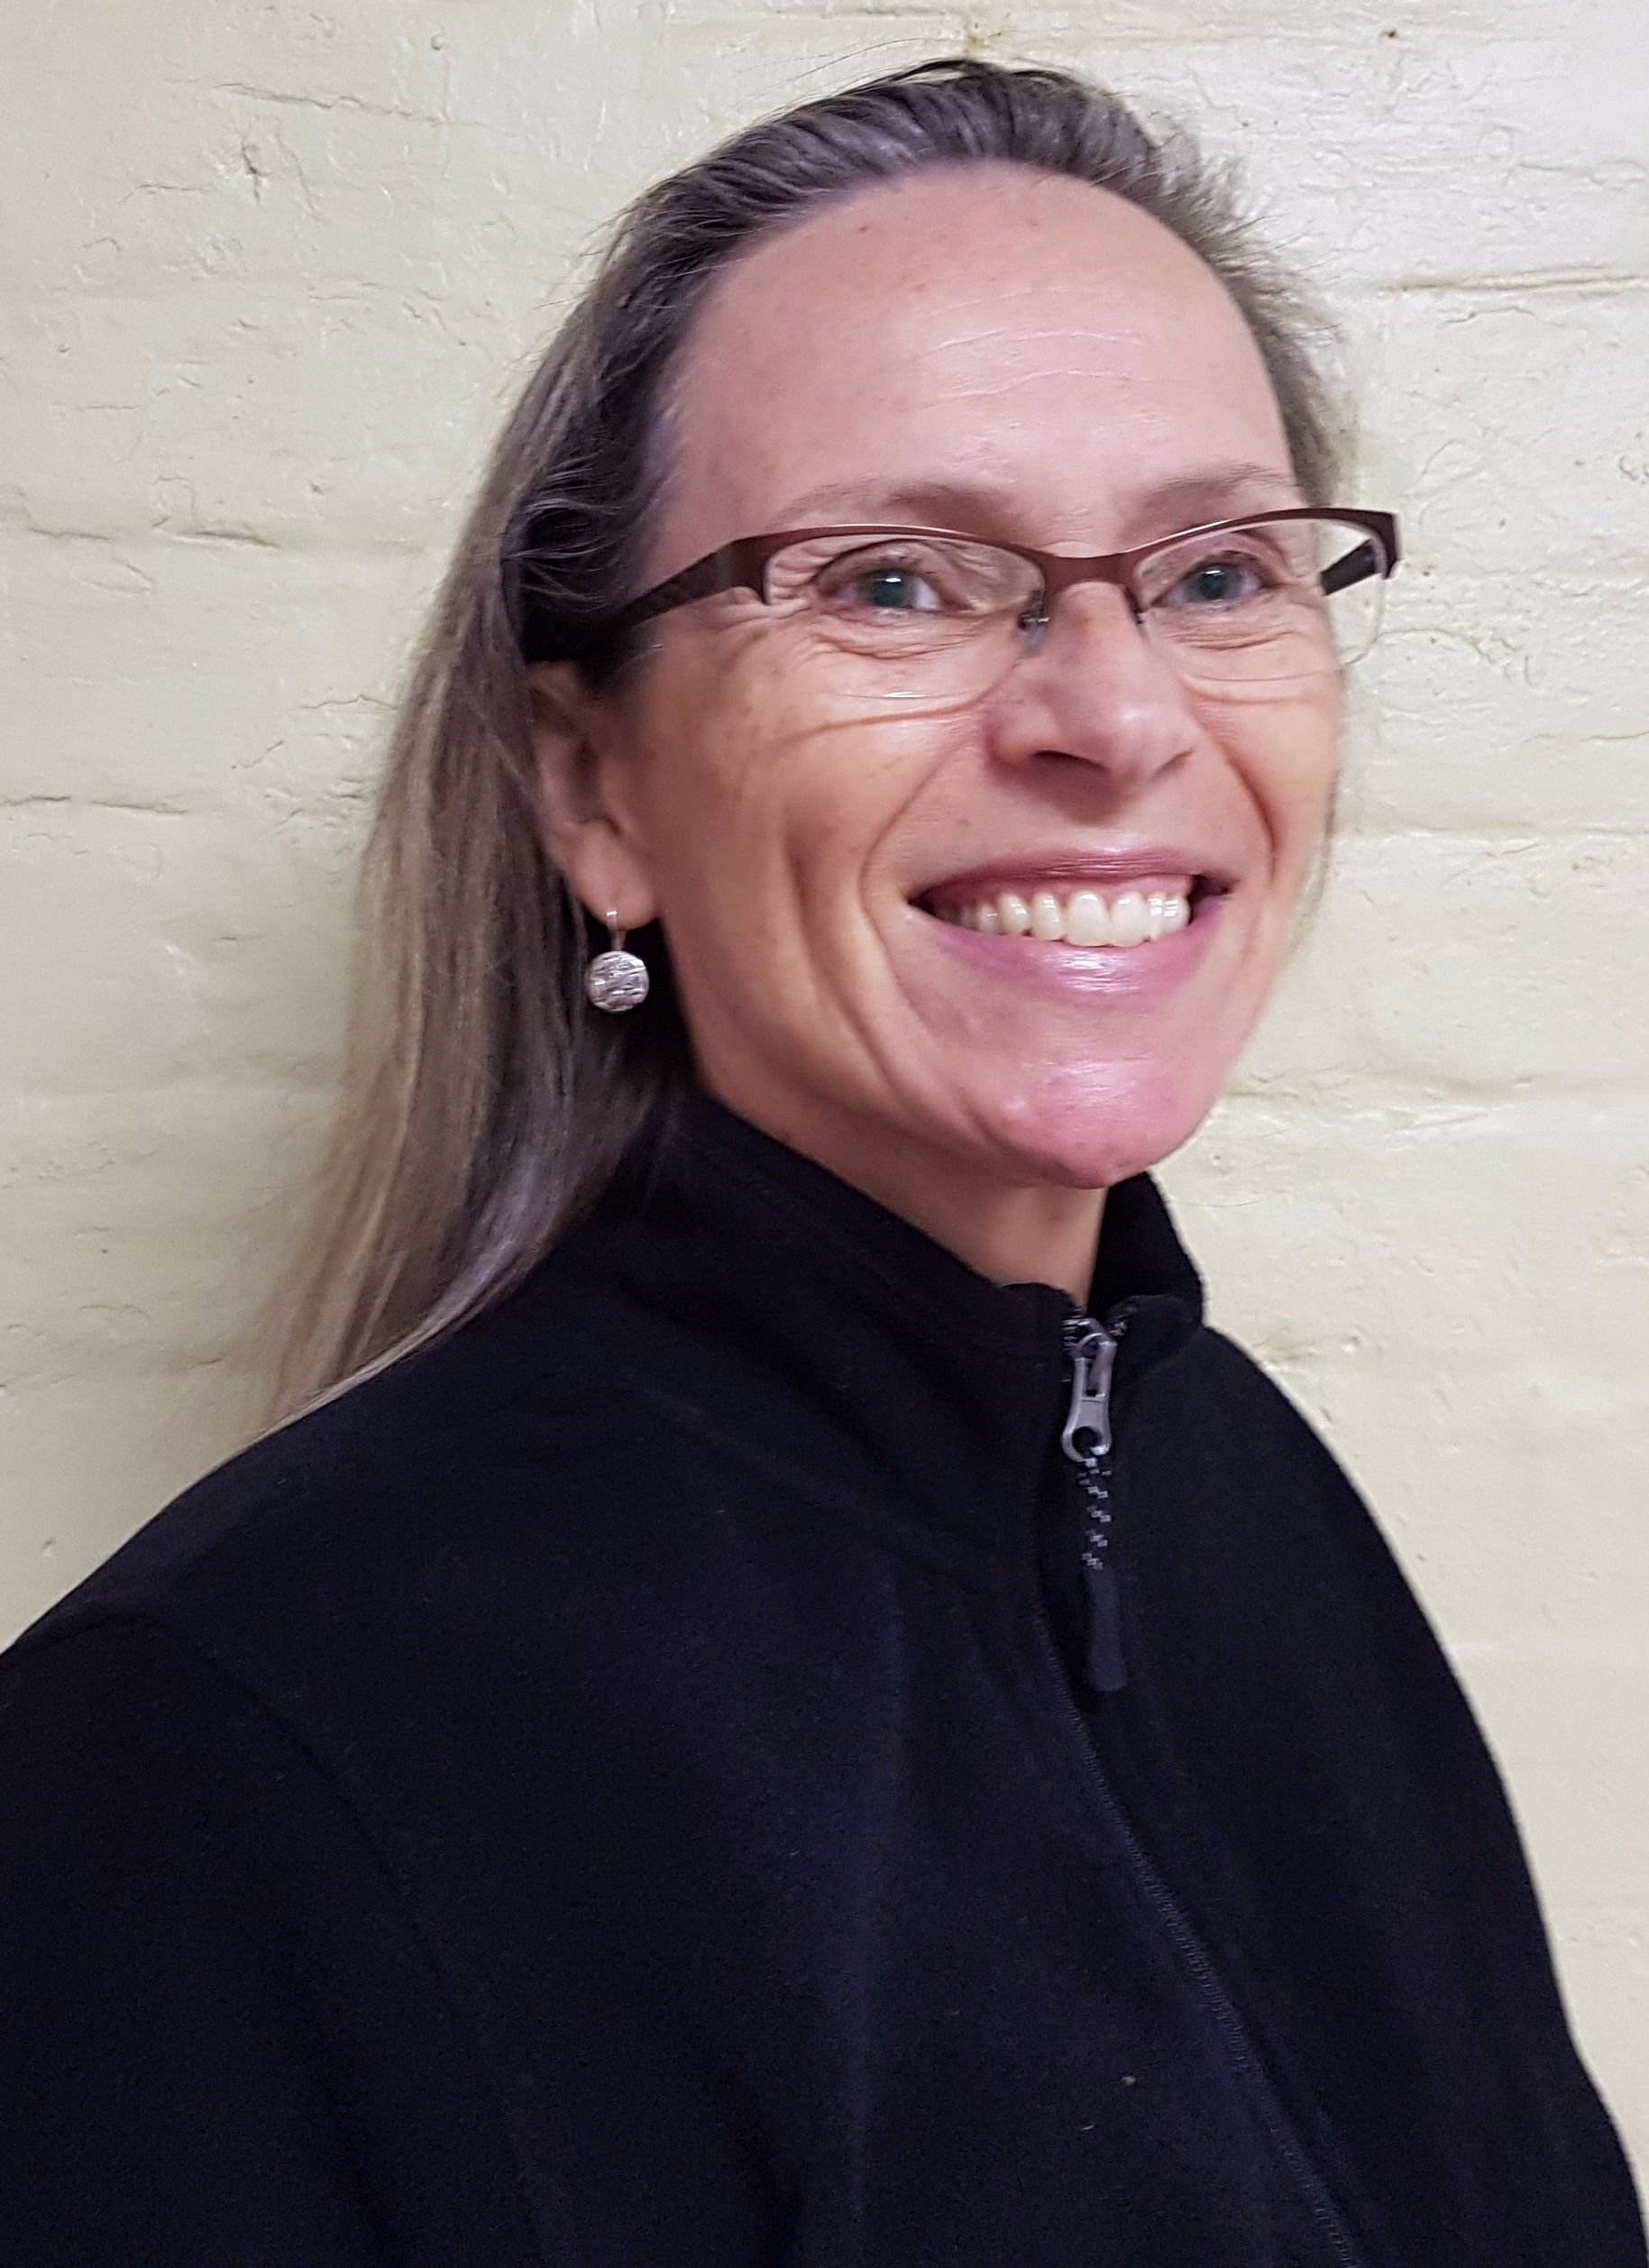 Executive Director, Melynda Jarratt